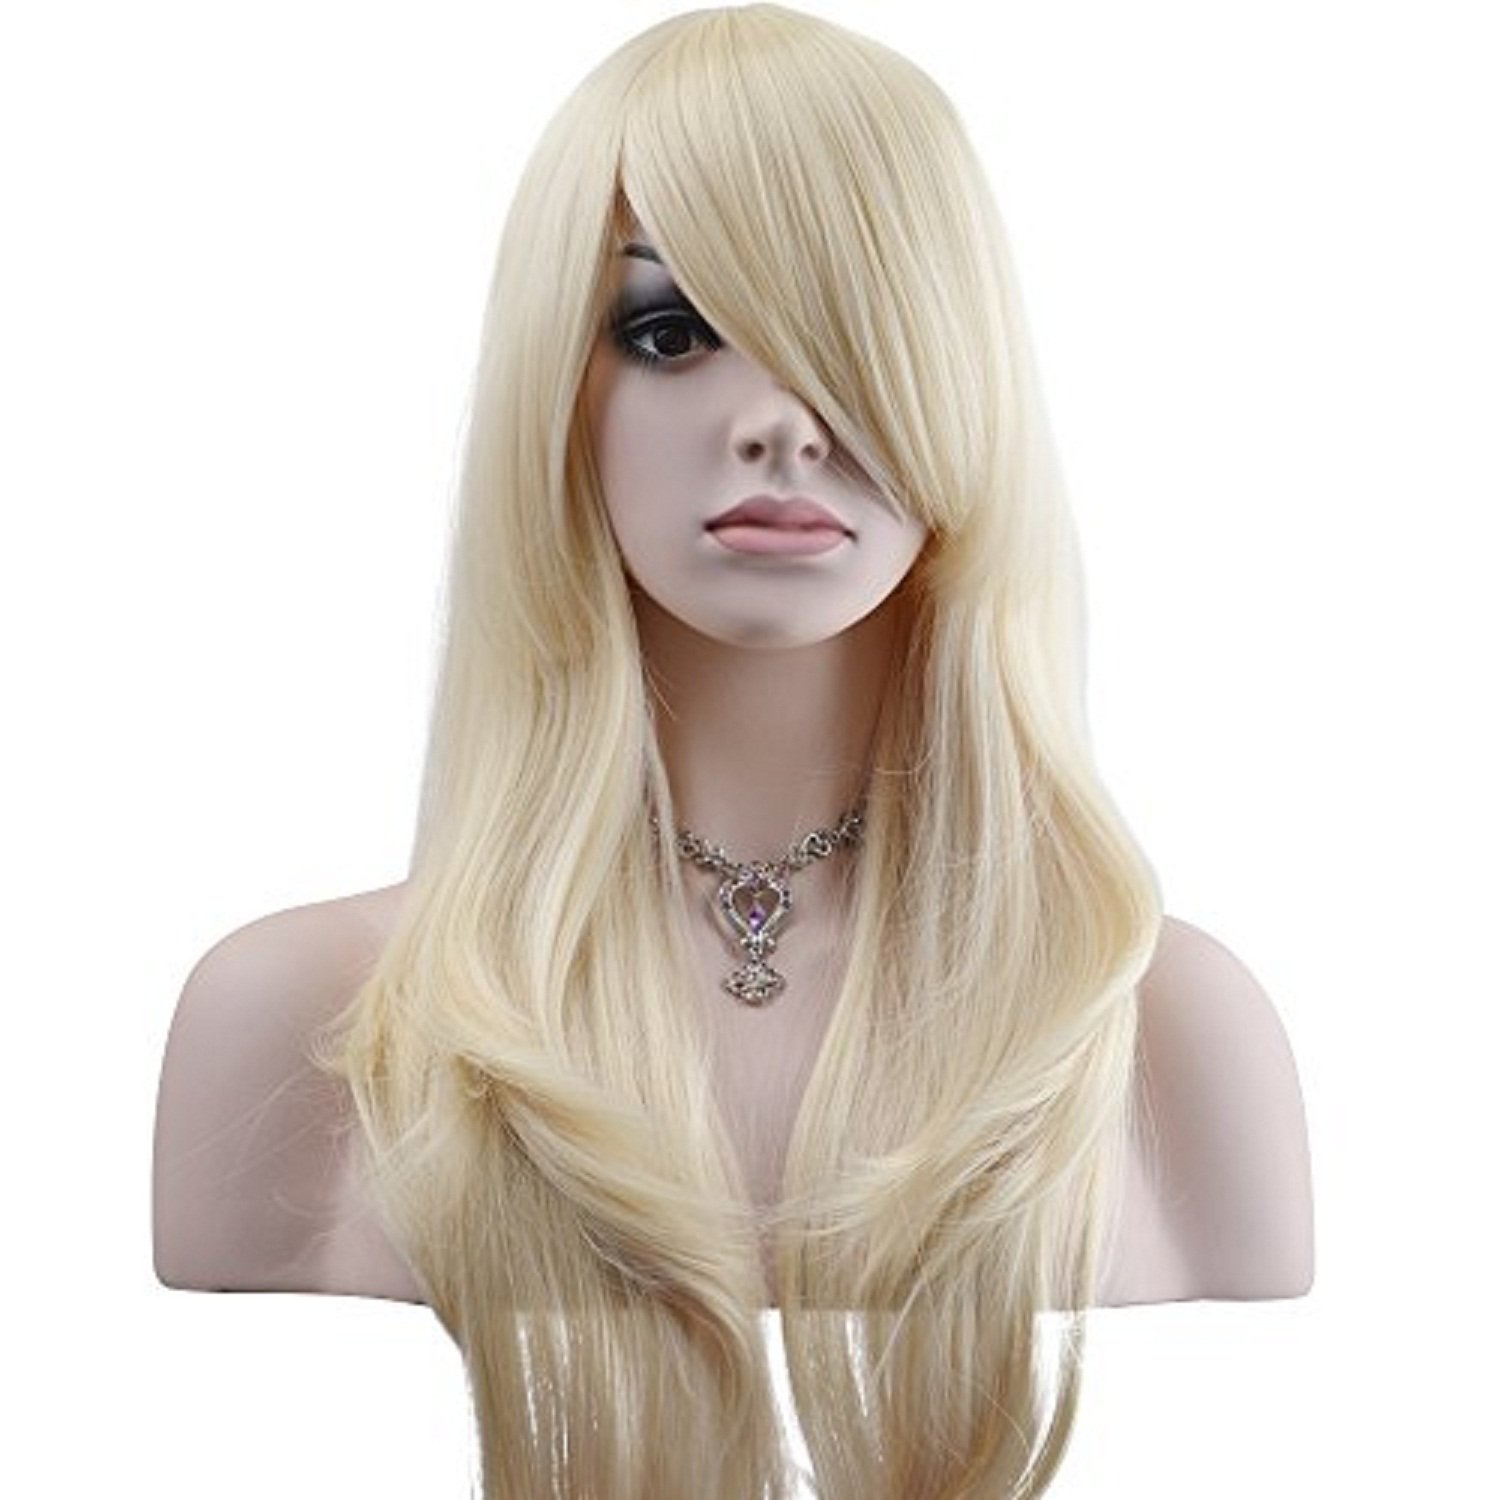 YOPO 28'' Wig Long Big Wavy Hair Women Cosplay Party Costume Wig(Light Blonde)